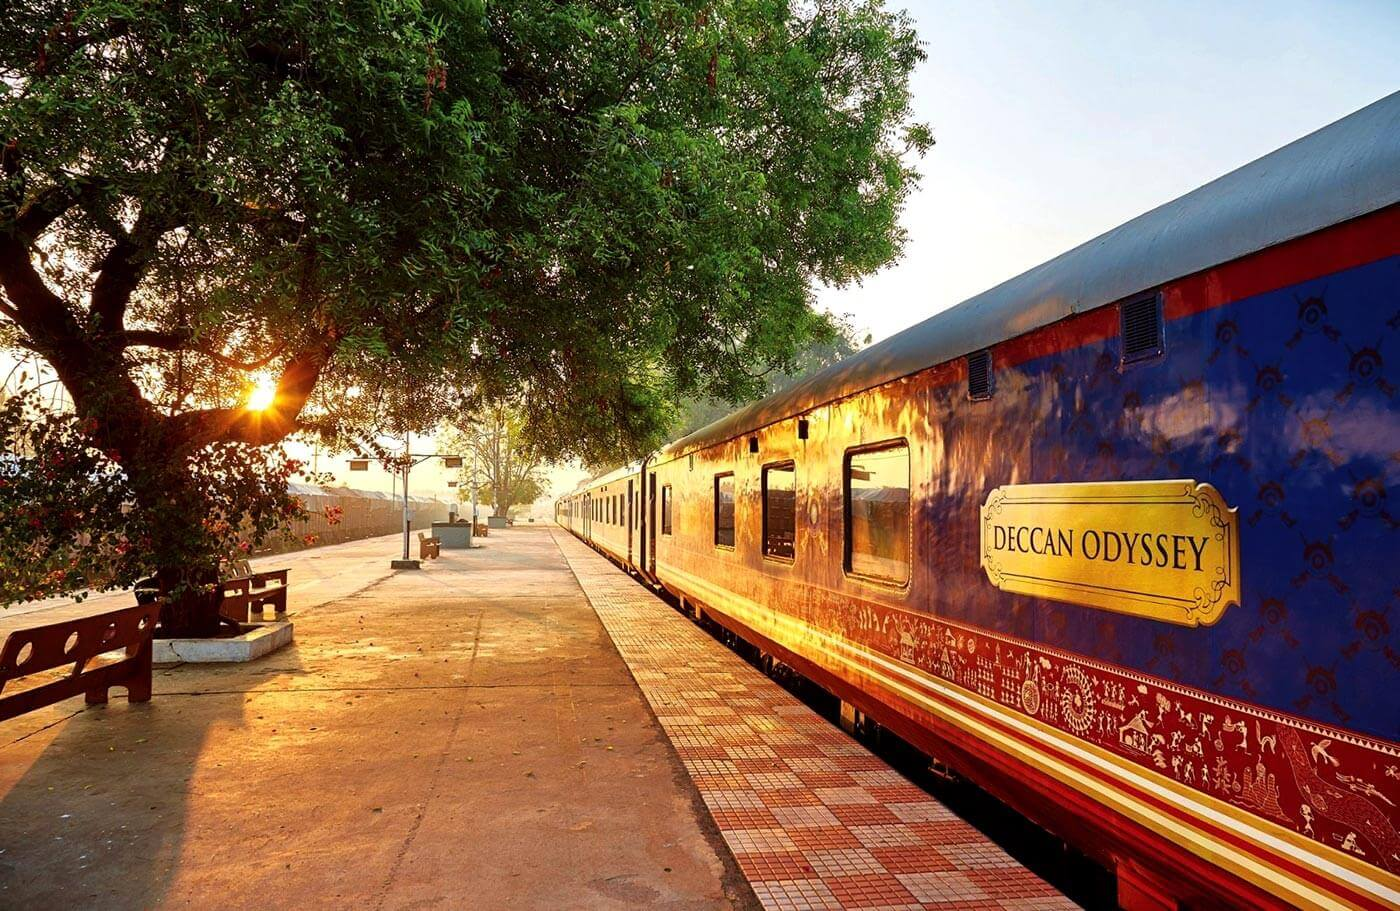 Deccan Odyssey takes guests on an exotic vacation across a number of the most visited destinations situated in the Deccan region of India.